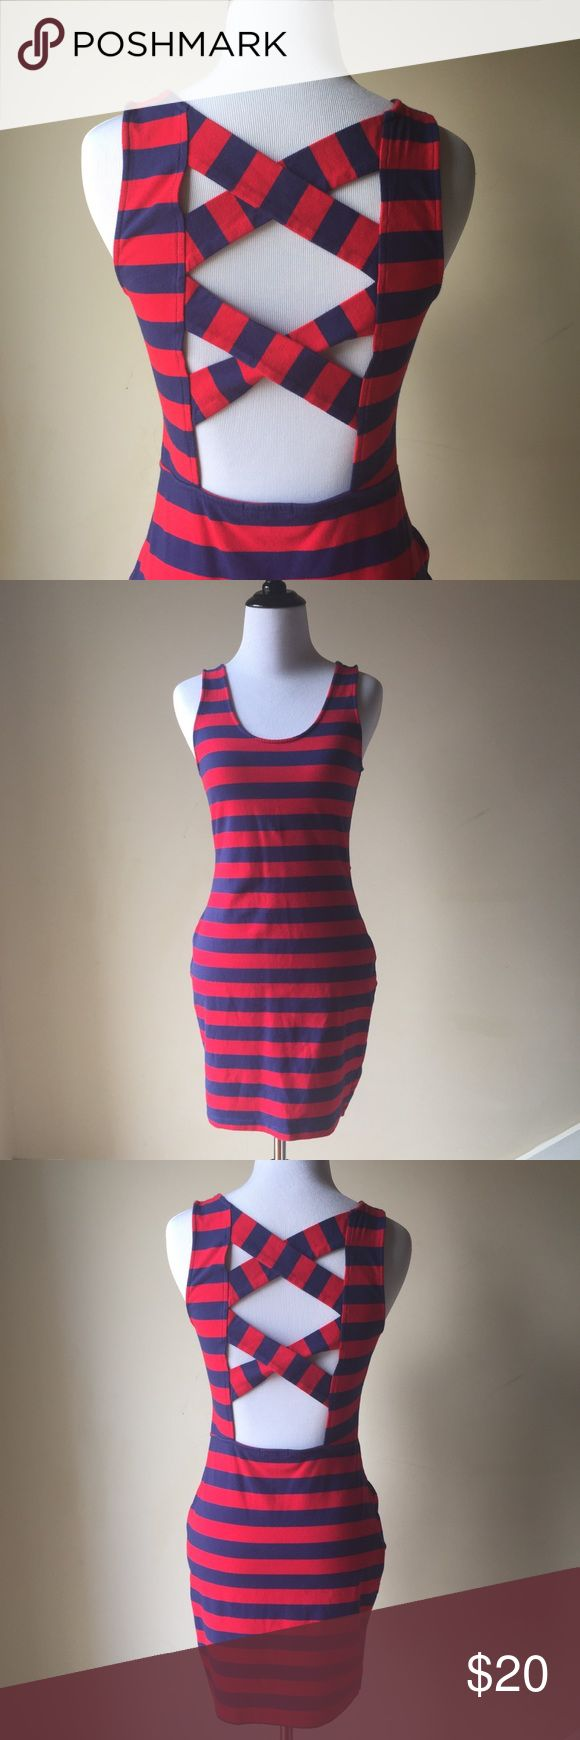 Charlotte Russe Red & Navy Striped Bodycon Dress Criss-Cross back. Charlotte Russe Dresses Mini